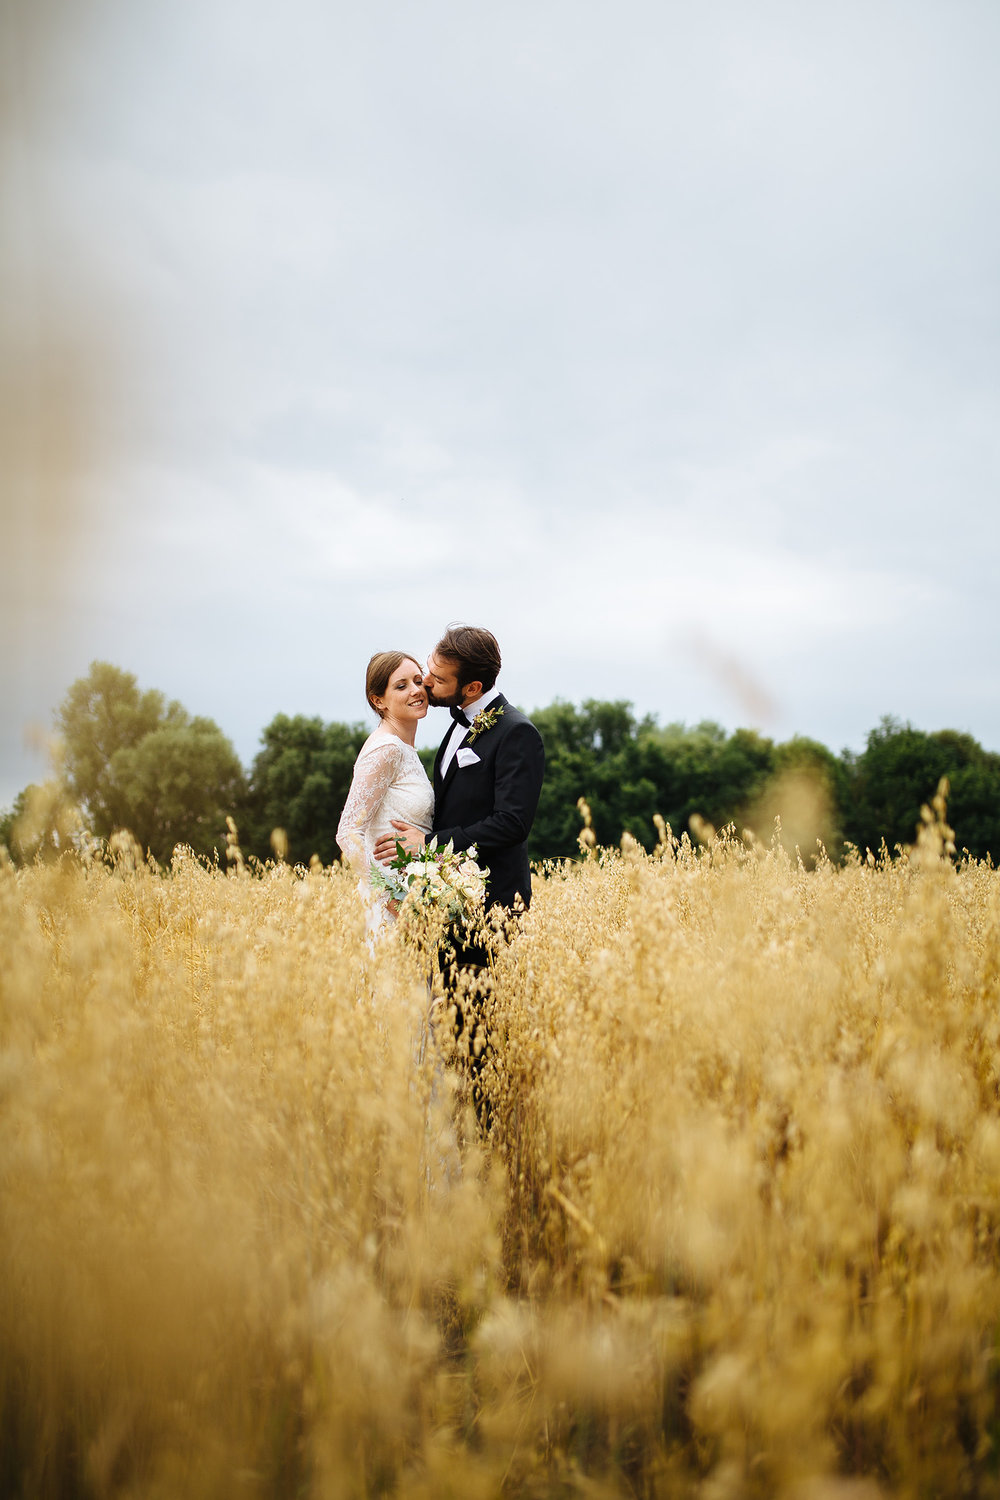 CHILDERLEY HALL CAMBRIDGE WEDDING 96.JPG